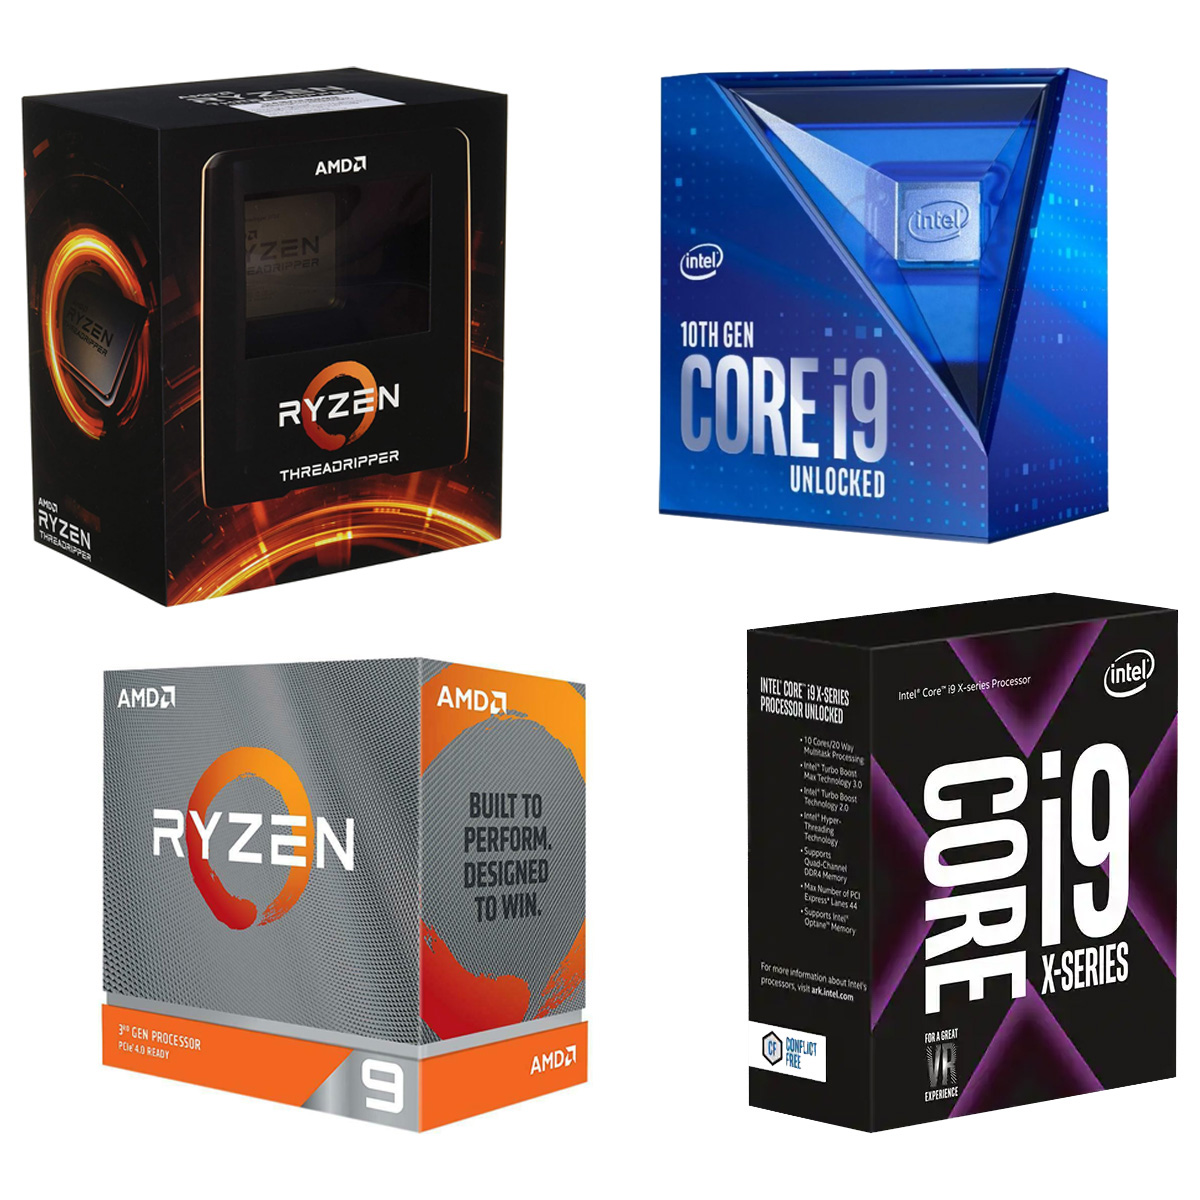 AMD Ryzen and Intel Core Product Packaging